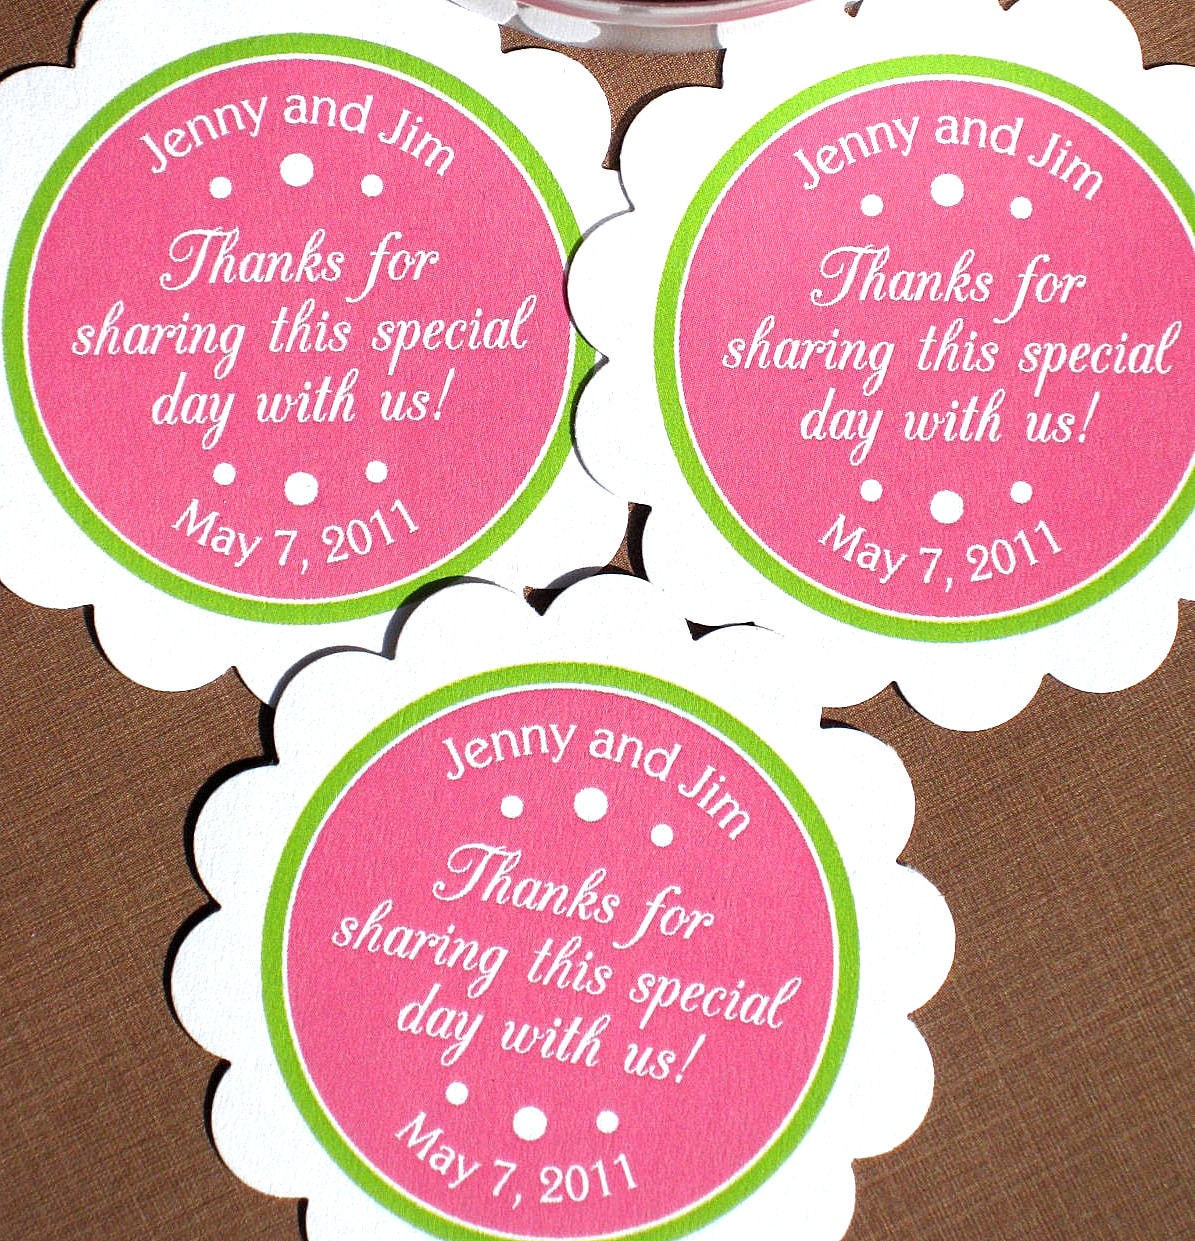 Wedding Favor Tags Messages : Items similar to PRINTABLE Wedding Favor Labels for Tags, Stickers ...